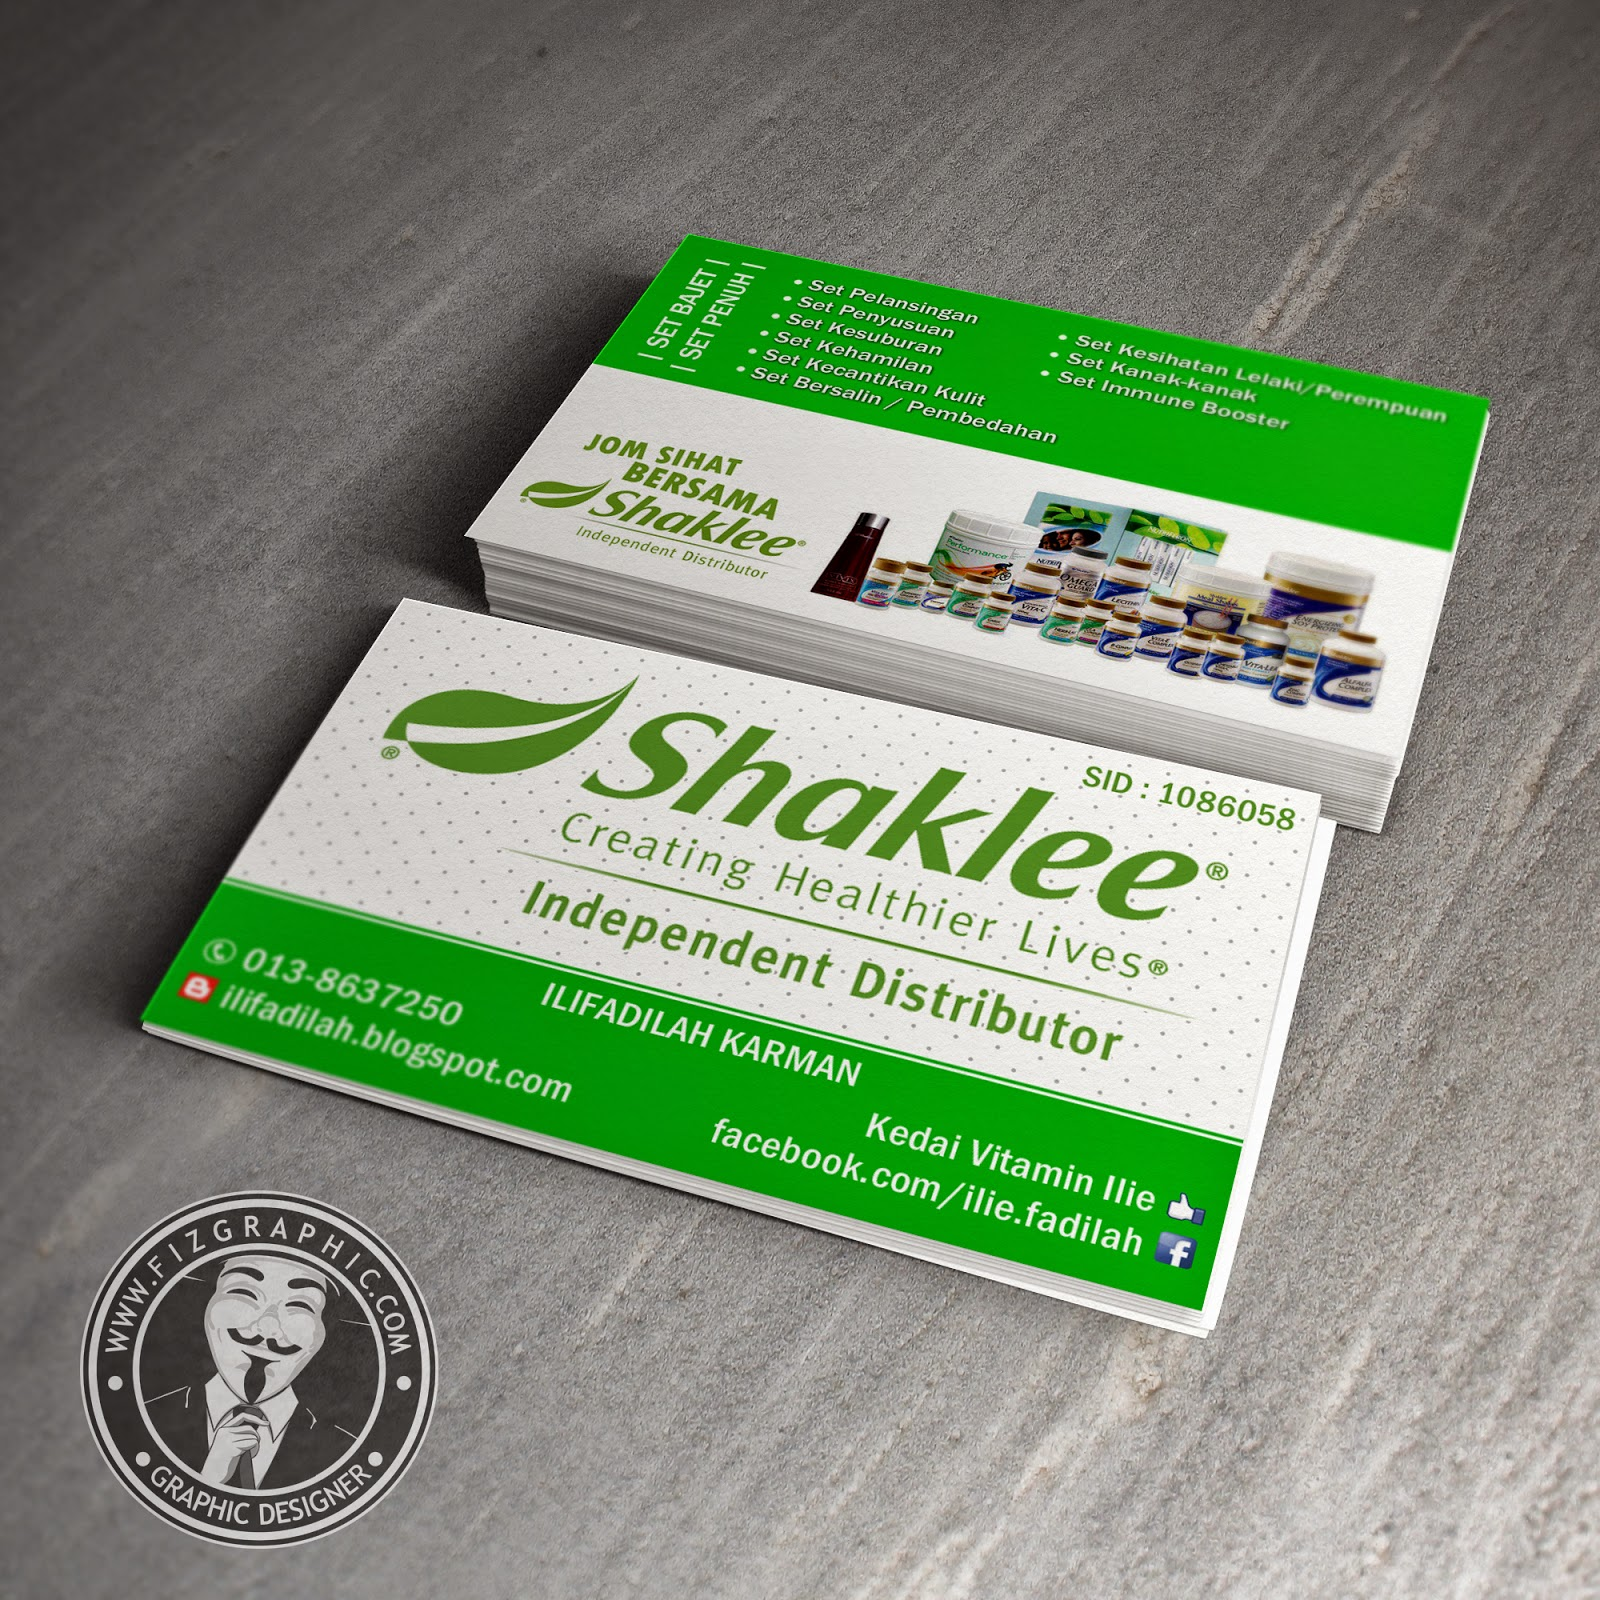 Fizgraphic design printing business card 64 for Shaklee business cards